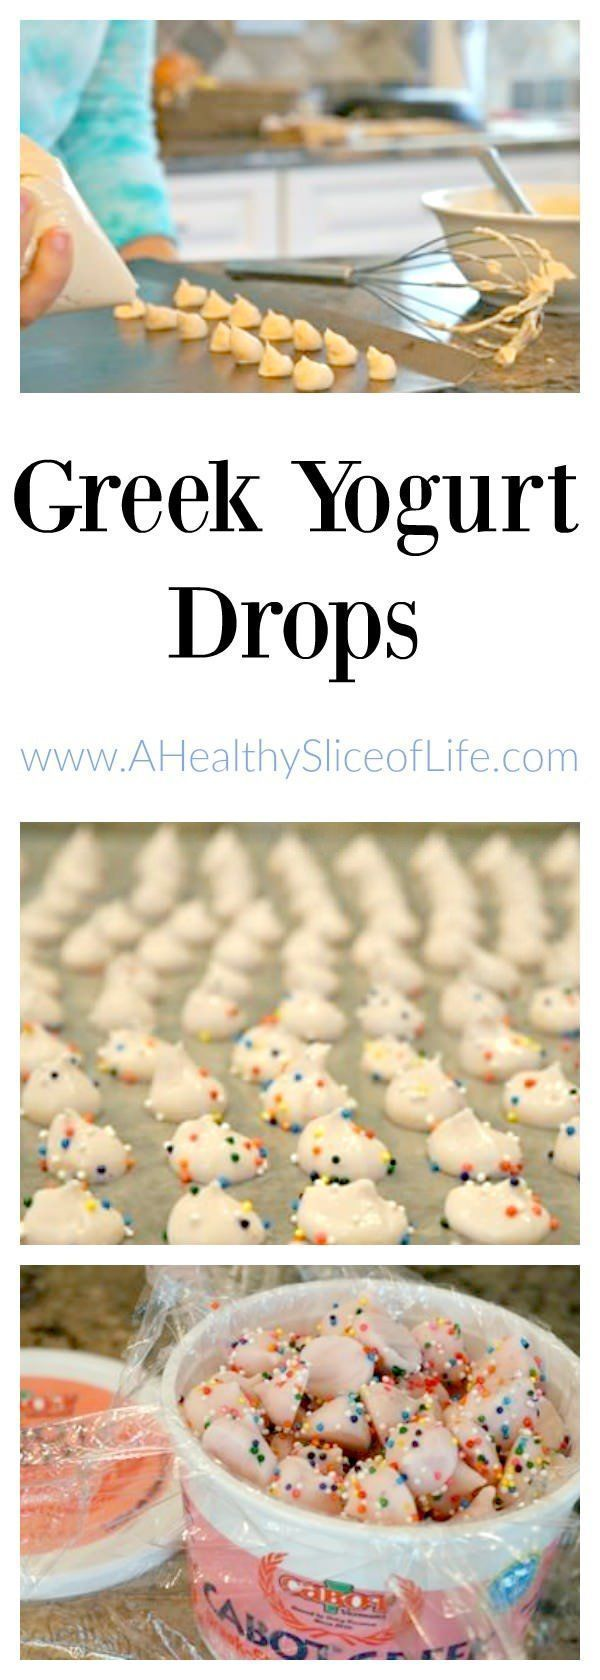 DIY Greek Yogurt Drops recipe for Kids (young and old). These kid-friendly Frozen Greek Yogurt drops are great for kids of all ages, from baby led weaning to toddler snacks and beyond, they are a healthy, delicious treat!